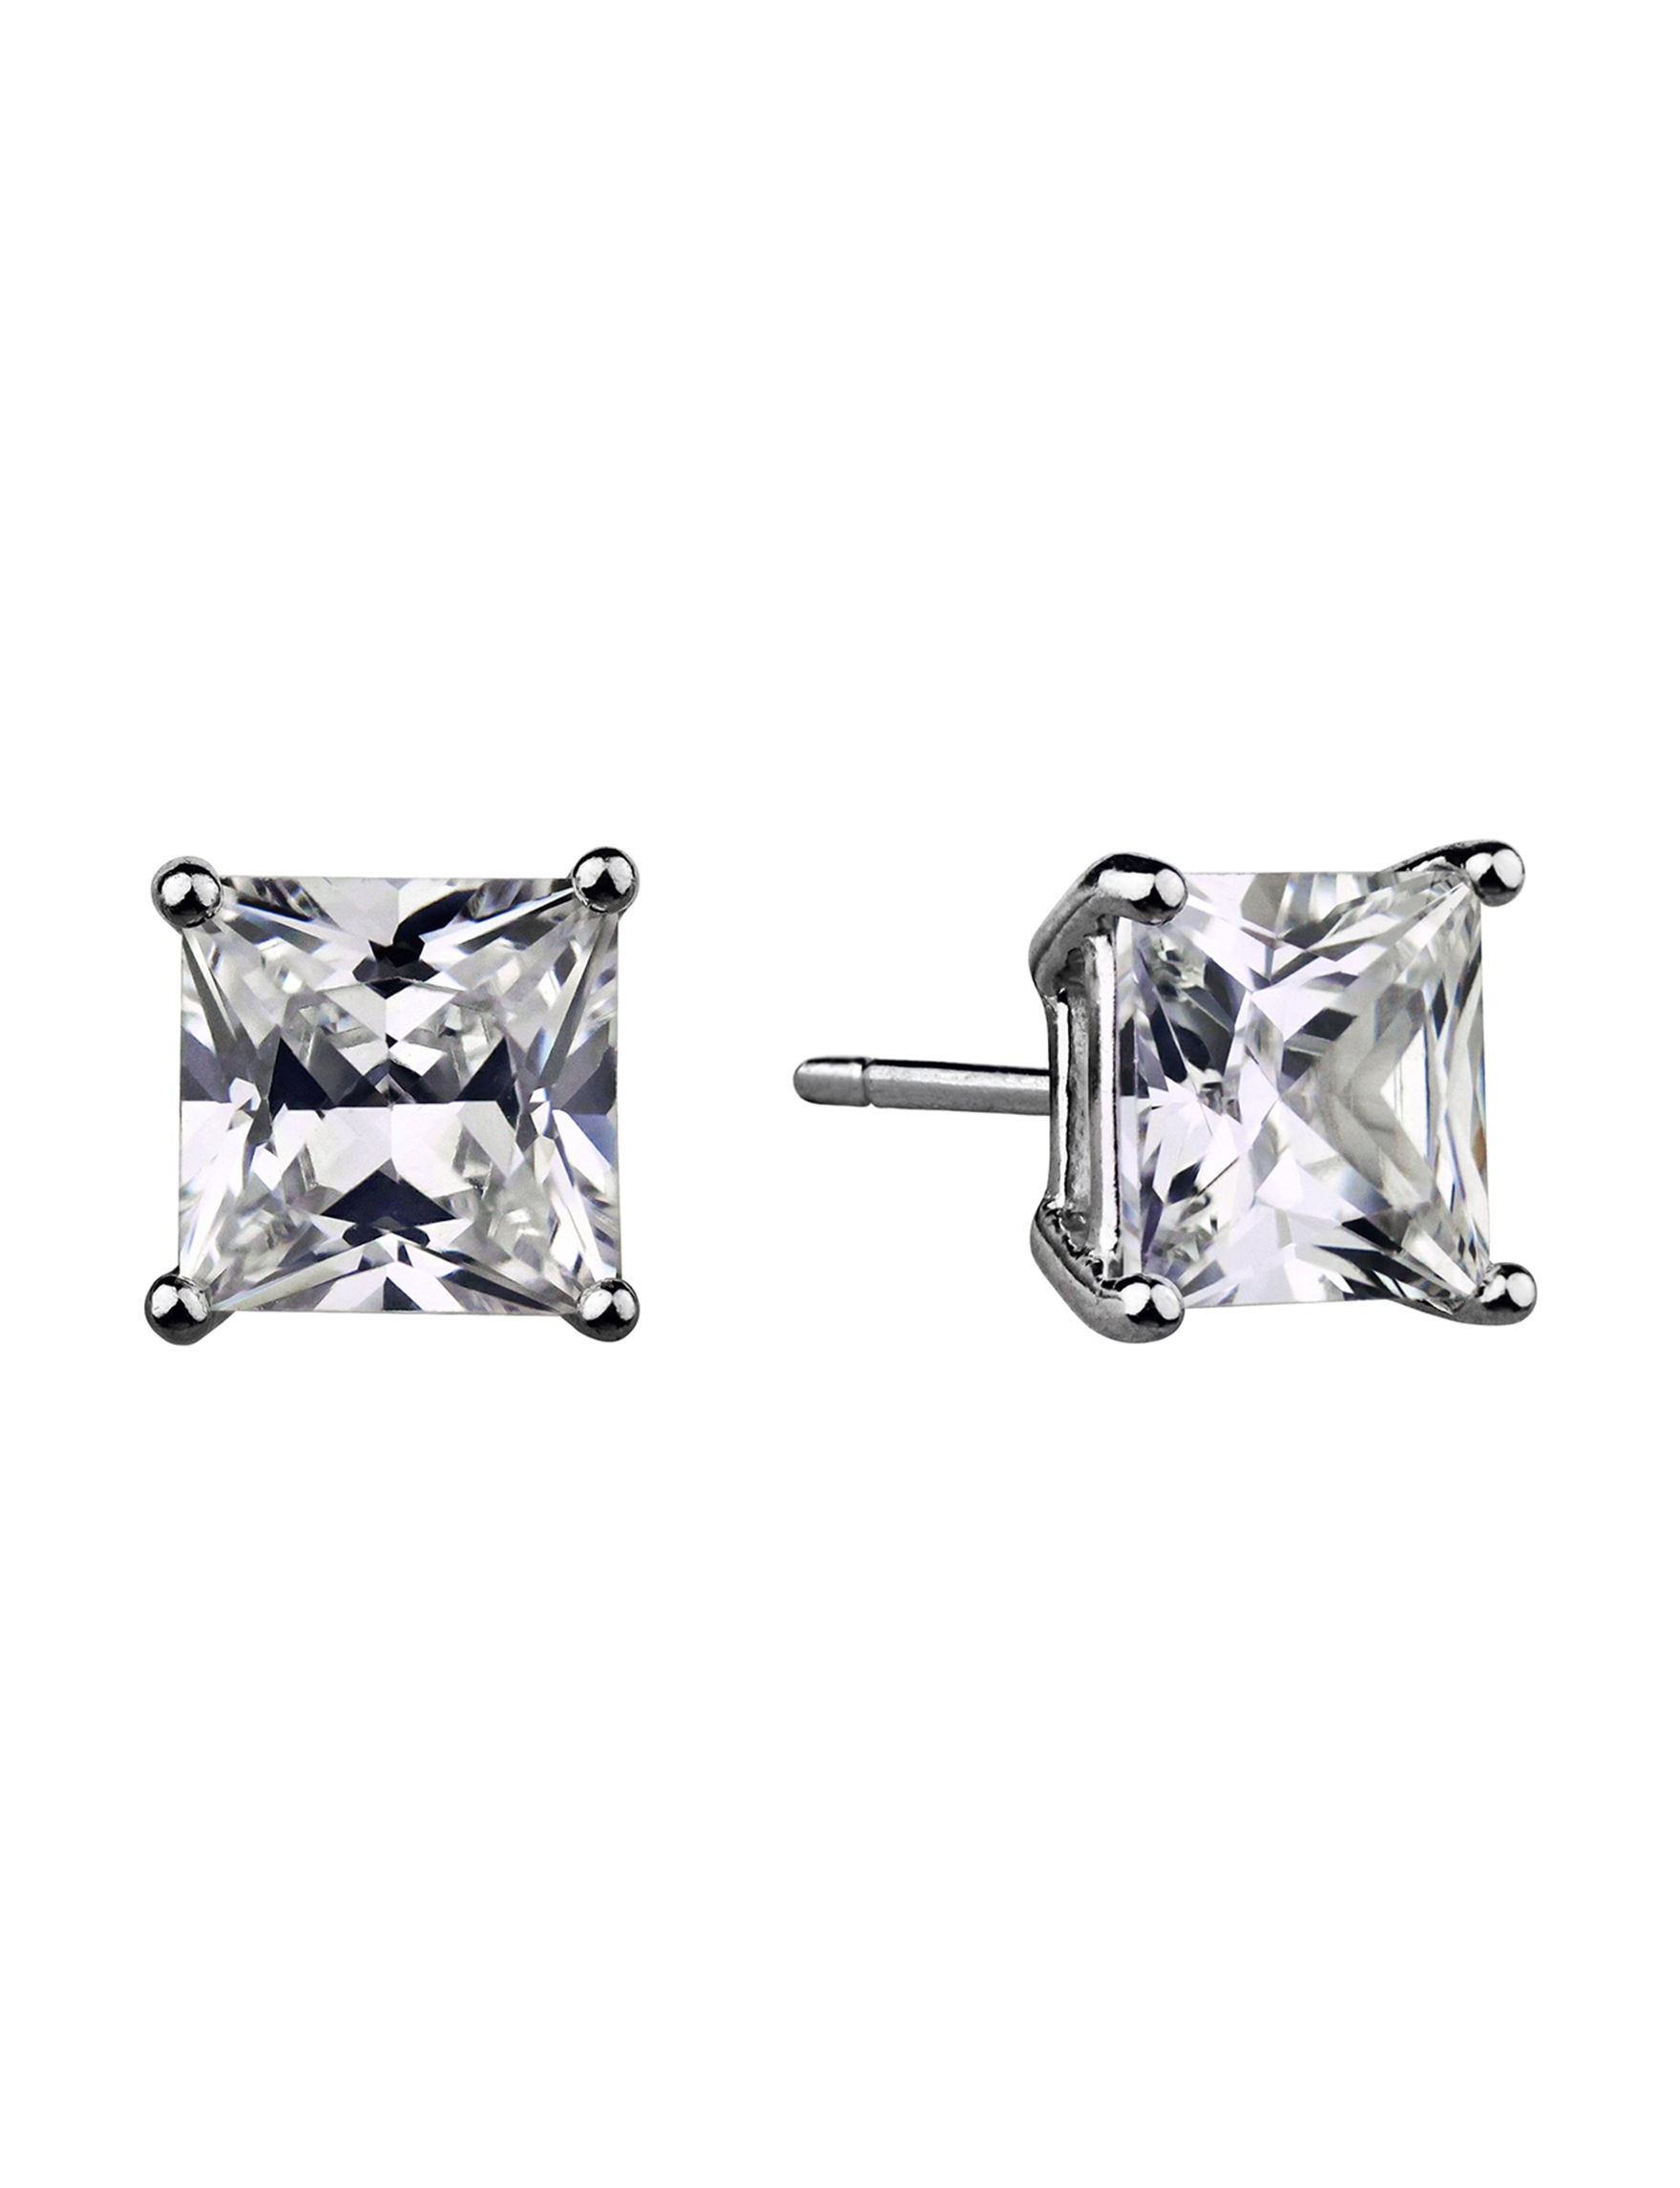 Sunstone Sterling Silver Studs Earrings Fine Jewelry